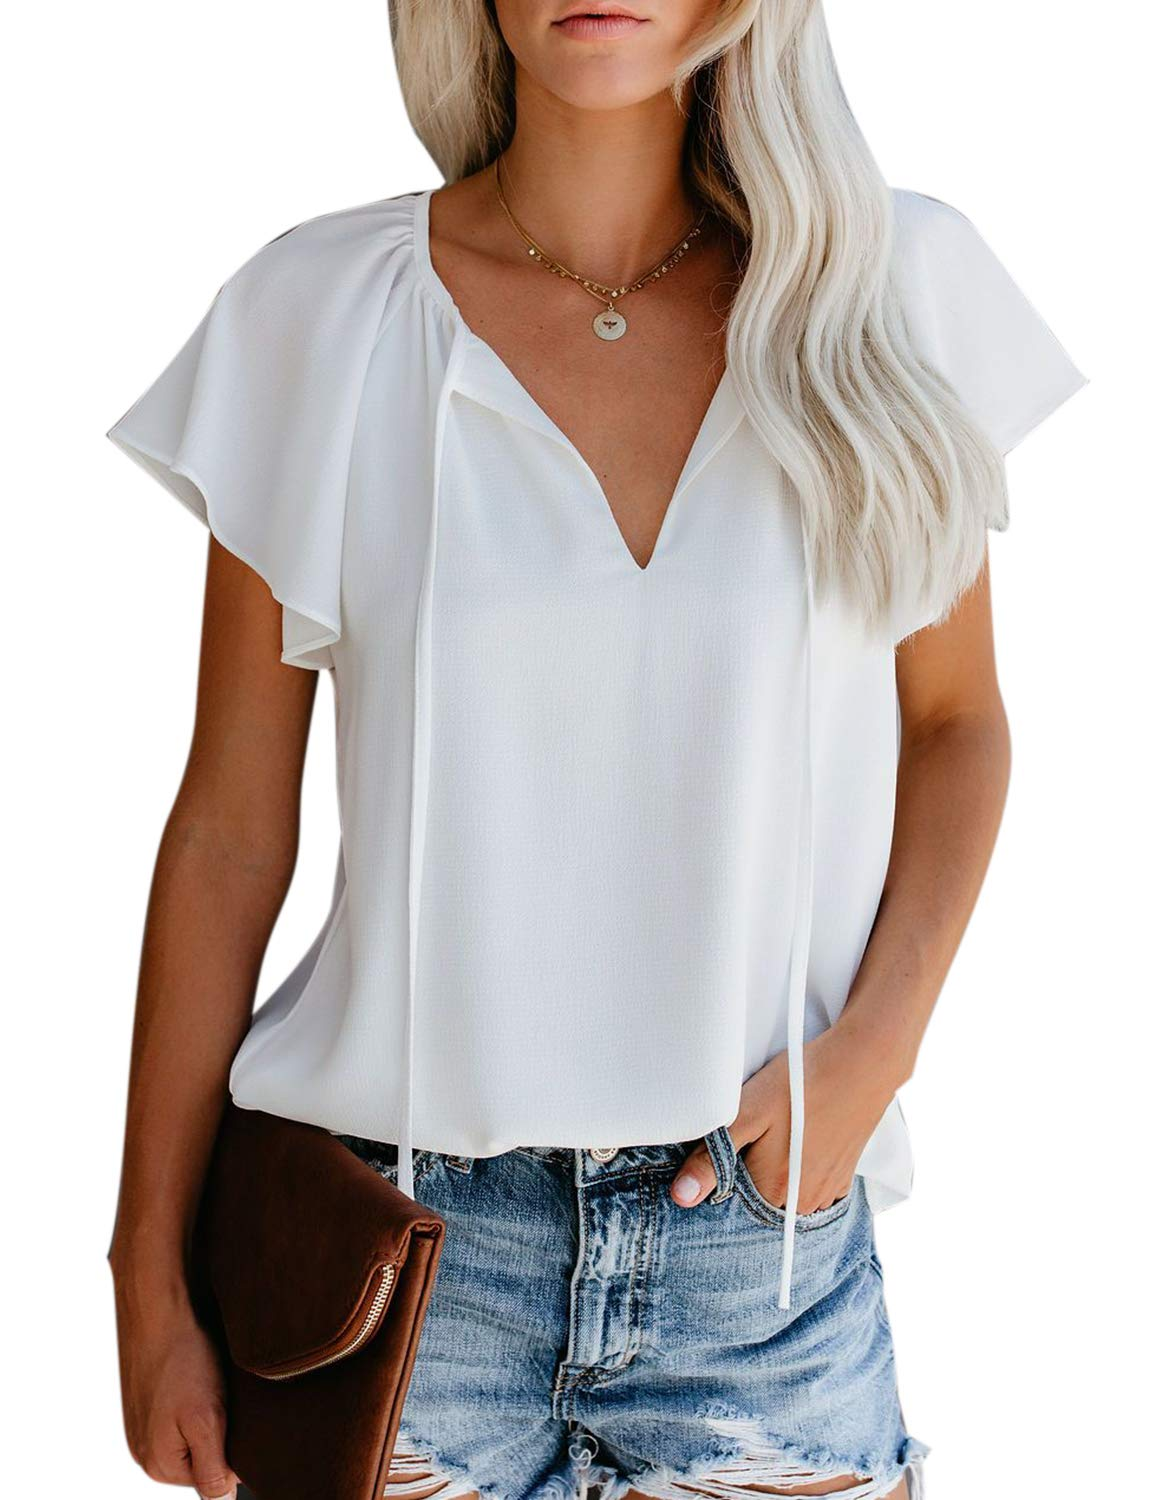 MAY Women's Elegant Chiffon Blouse V Neck Short Sleeve Tie Front Loose Shirt White